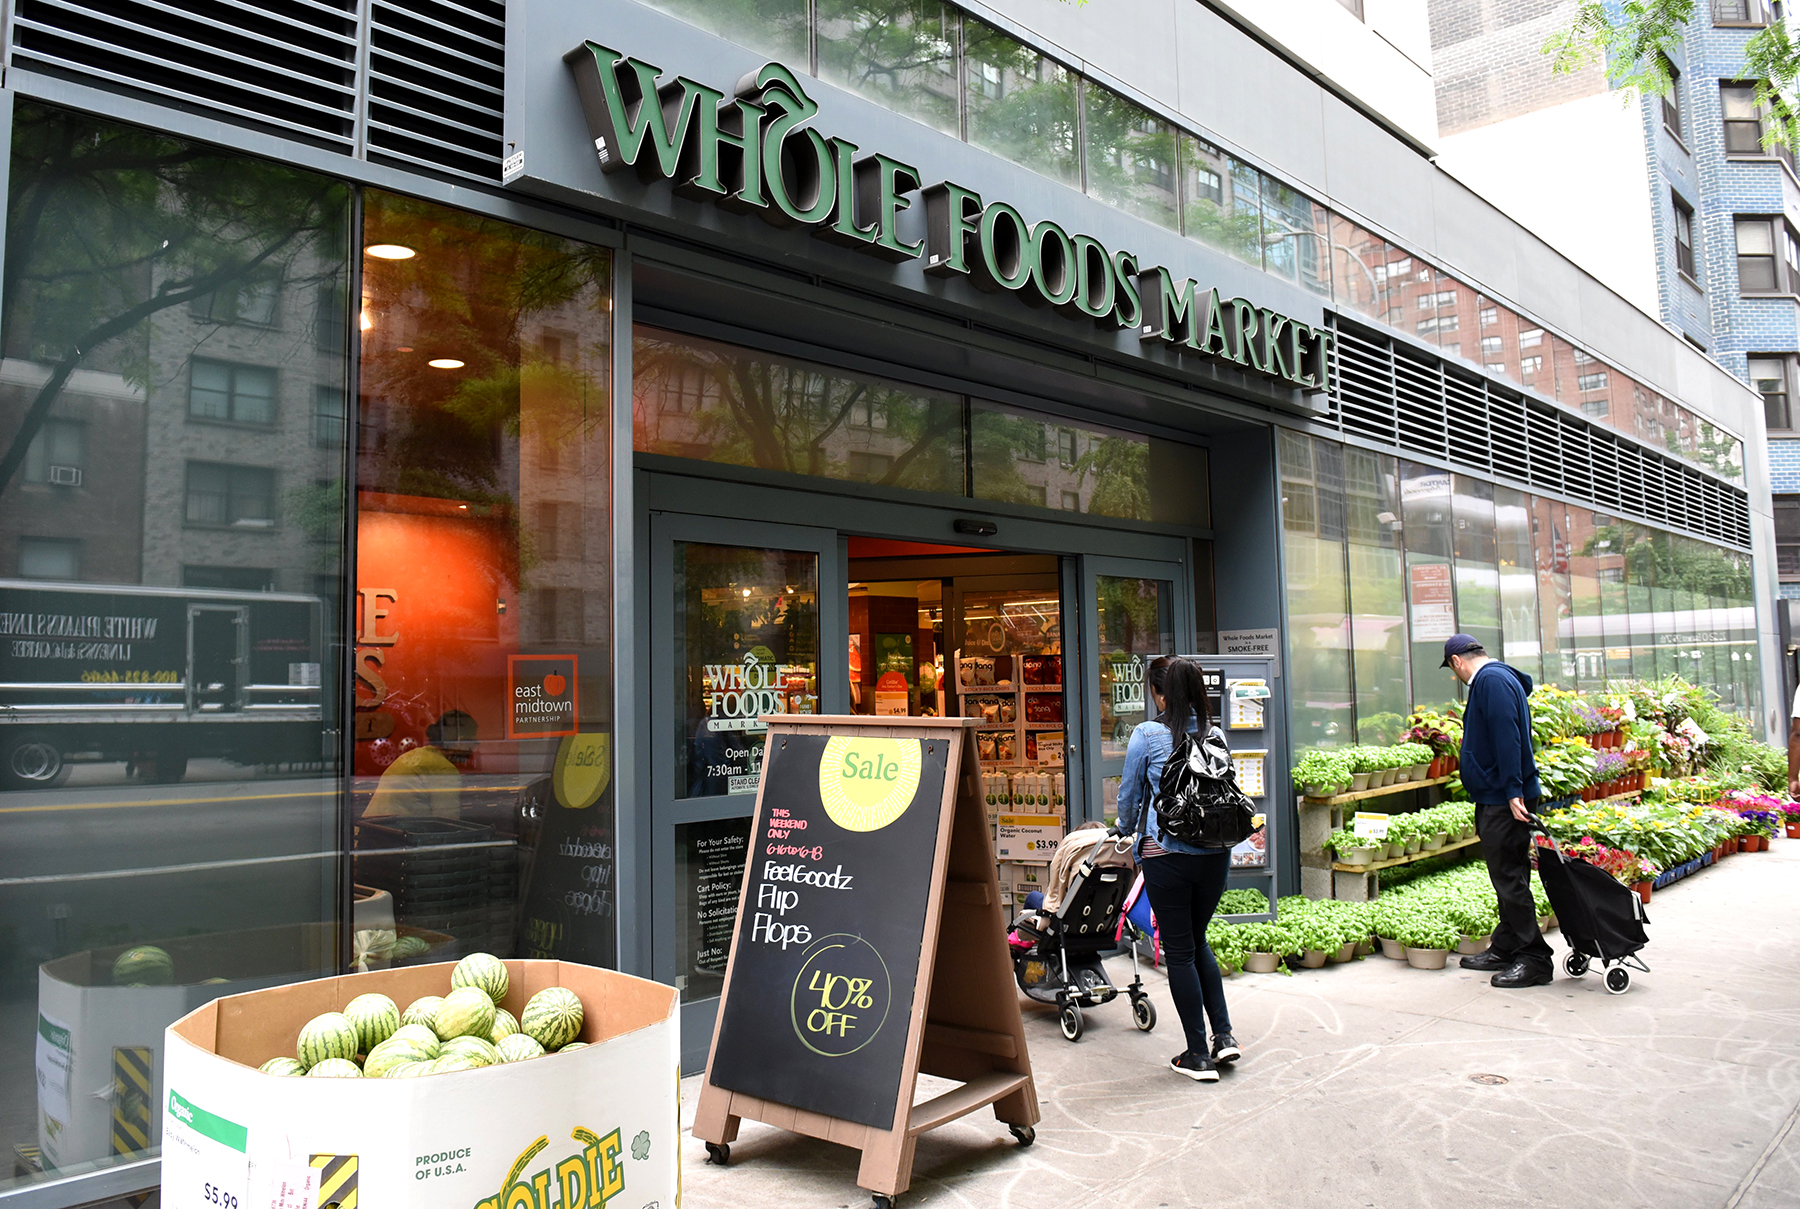 6 Must-Buy Whole Foods' Items After Monday's Price Drop, According to a Nutritionist